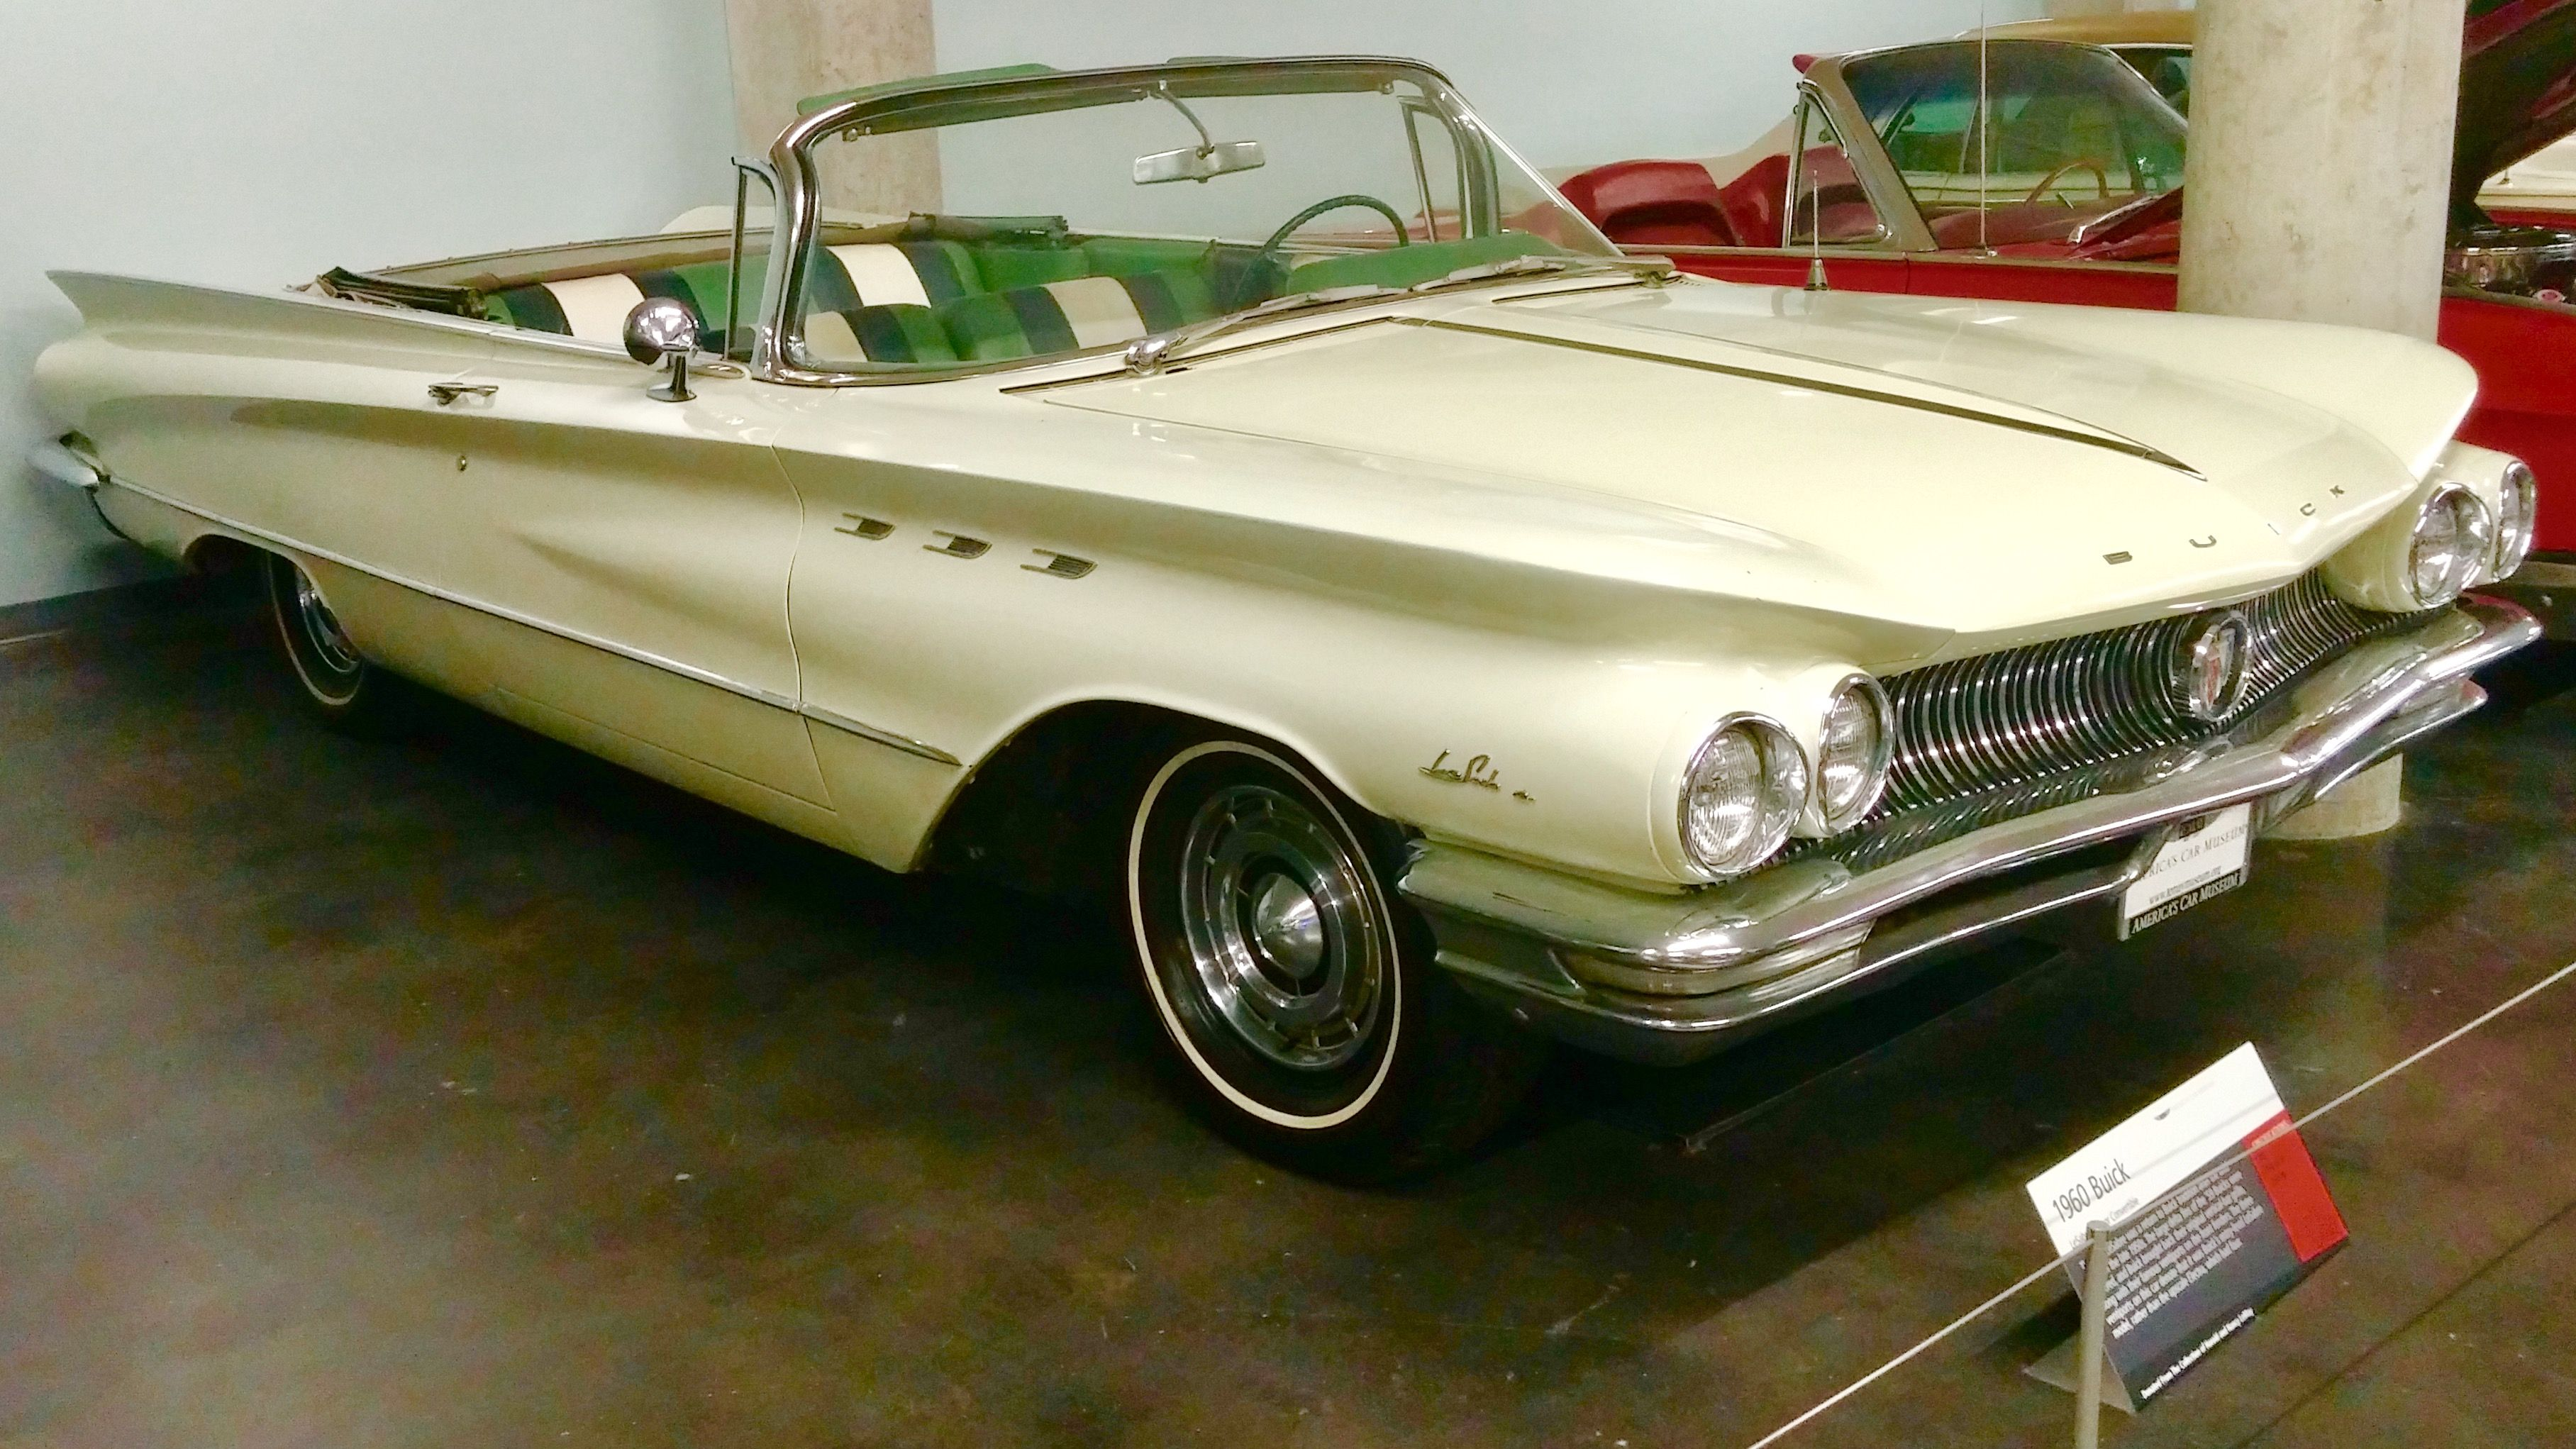 1960 Buick Lesabre 2 Door Convertible In Cream Exterior Color With Lucerne Green Arctic White Matching Interior Vinyl Folding Top